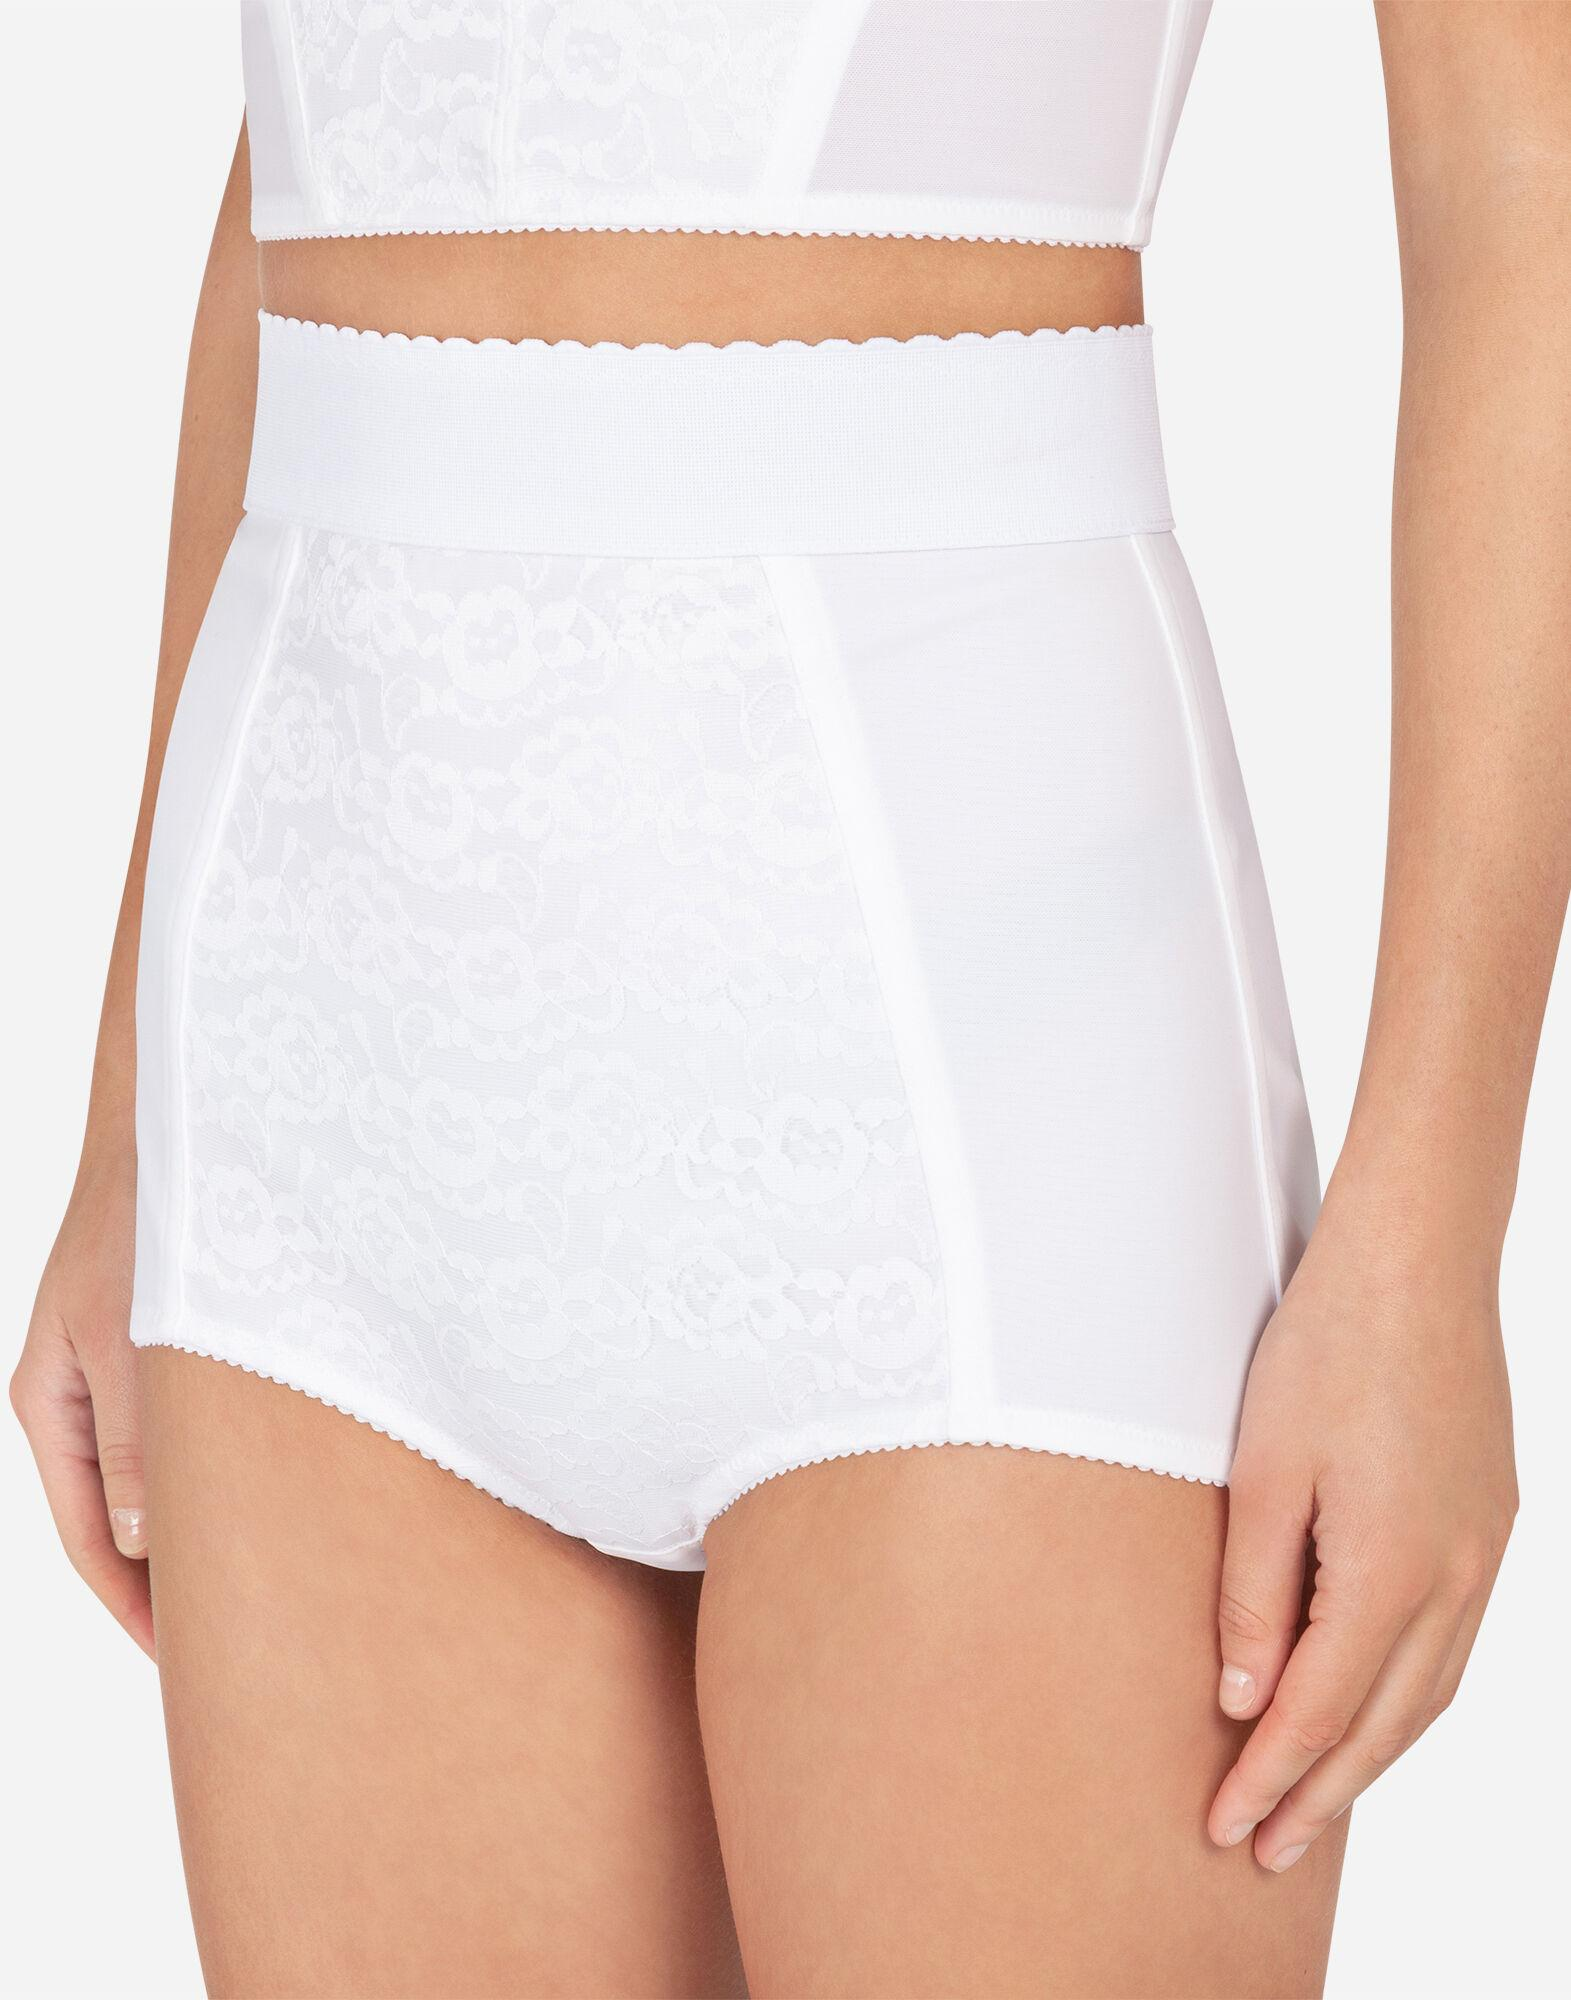 High-waisted shaper panties in jacquard and satin 3